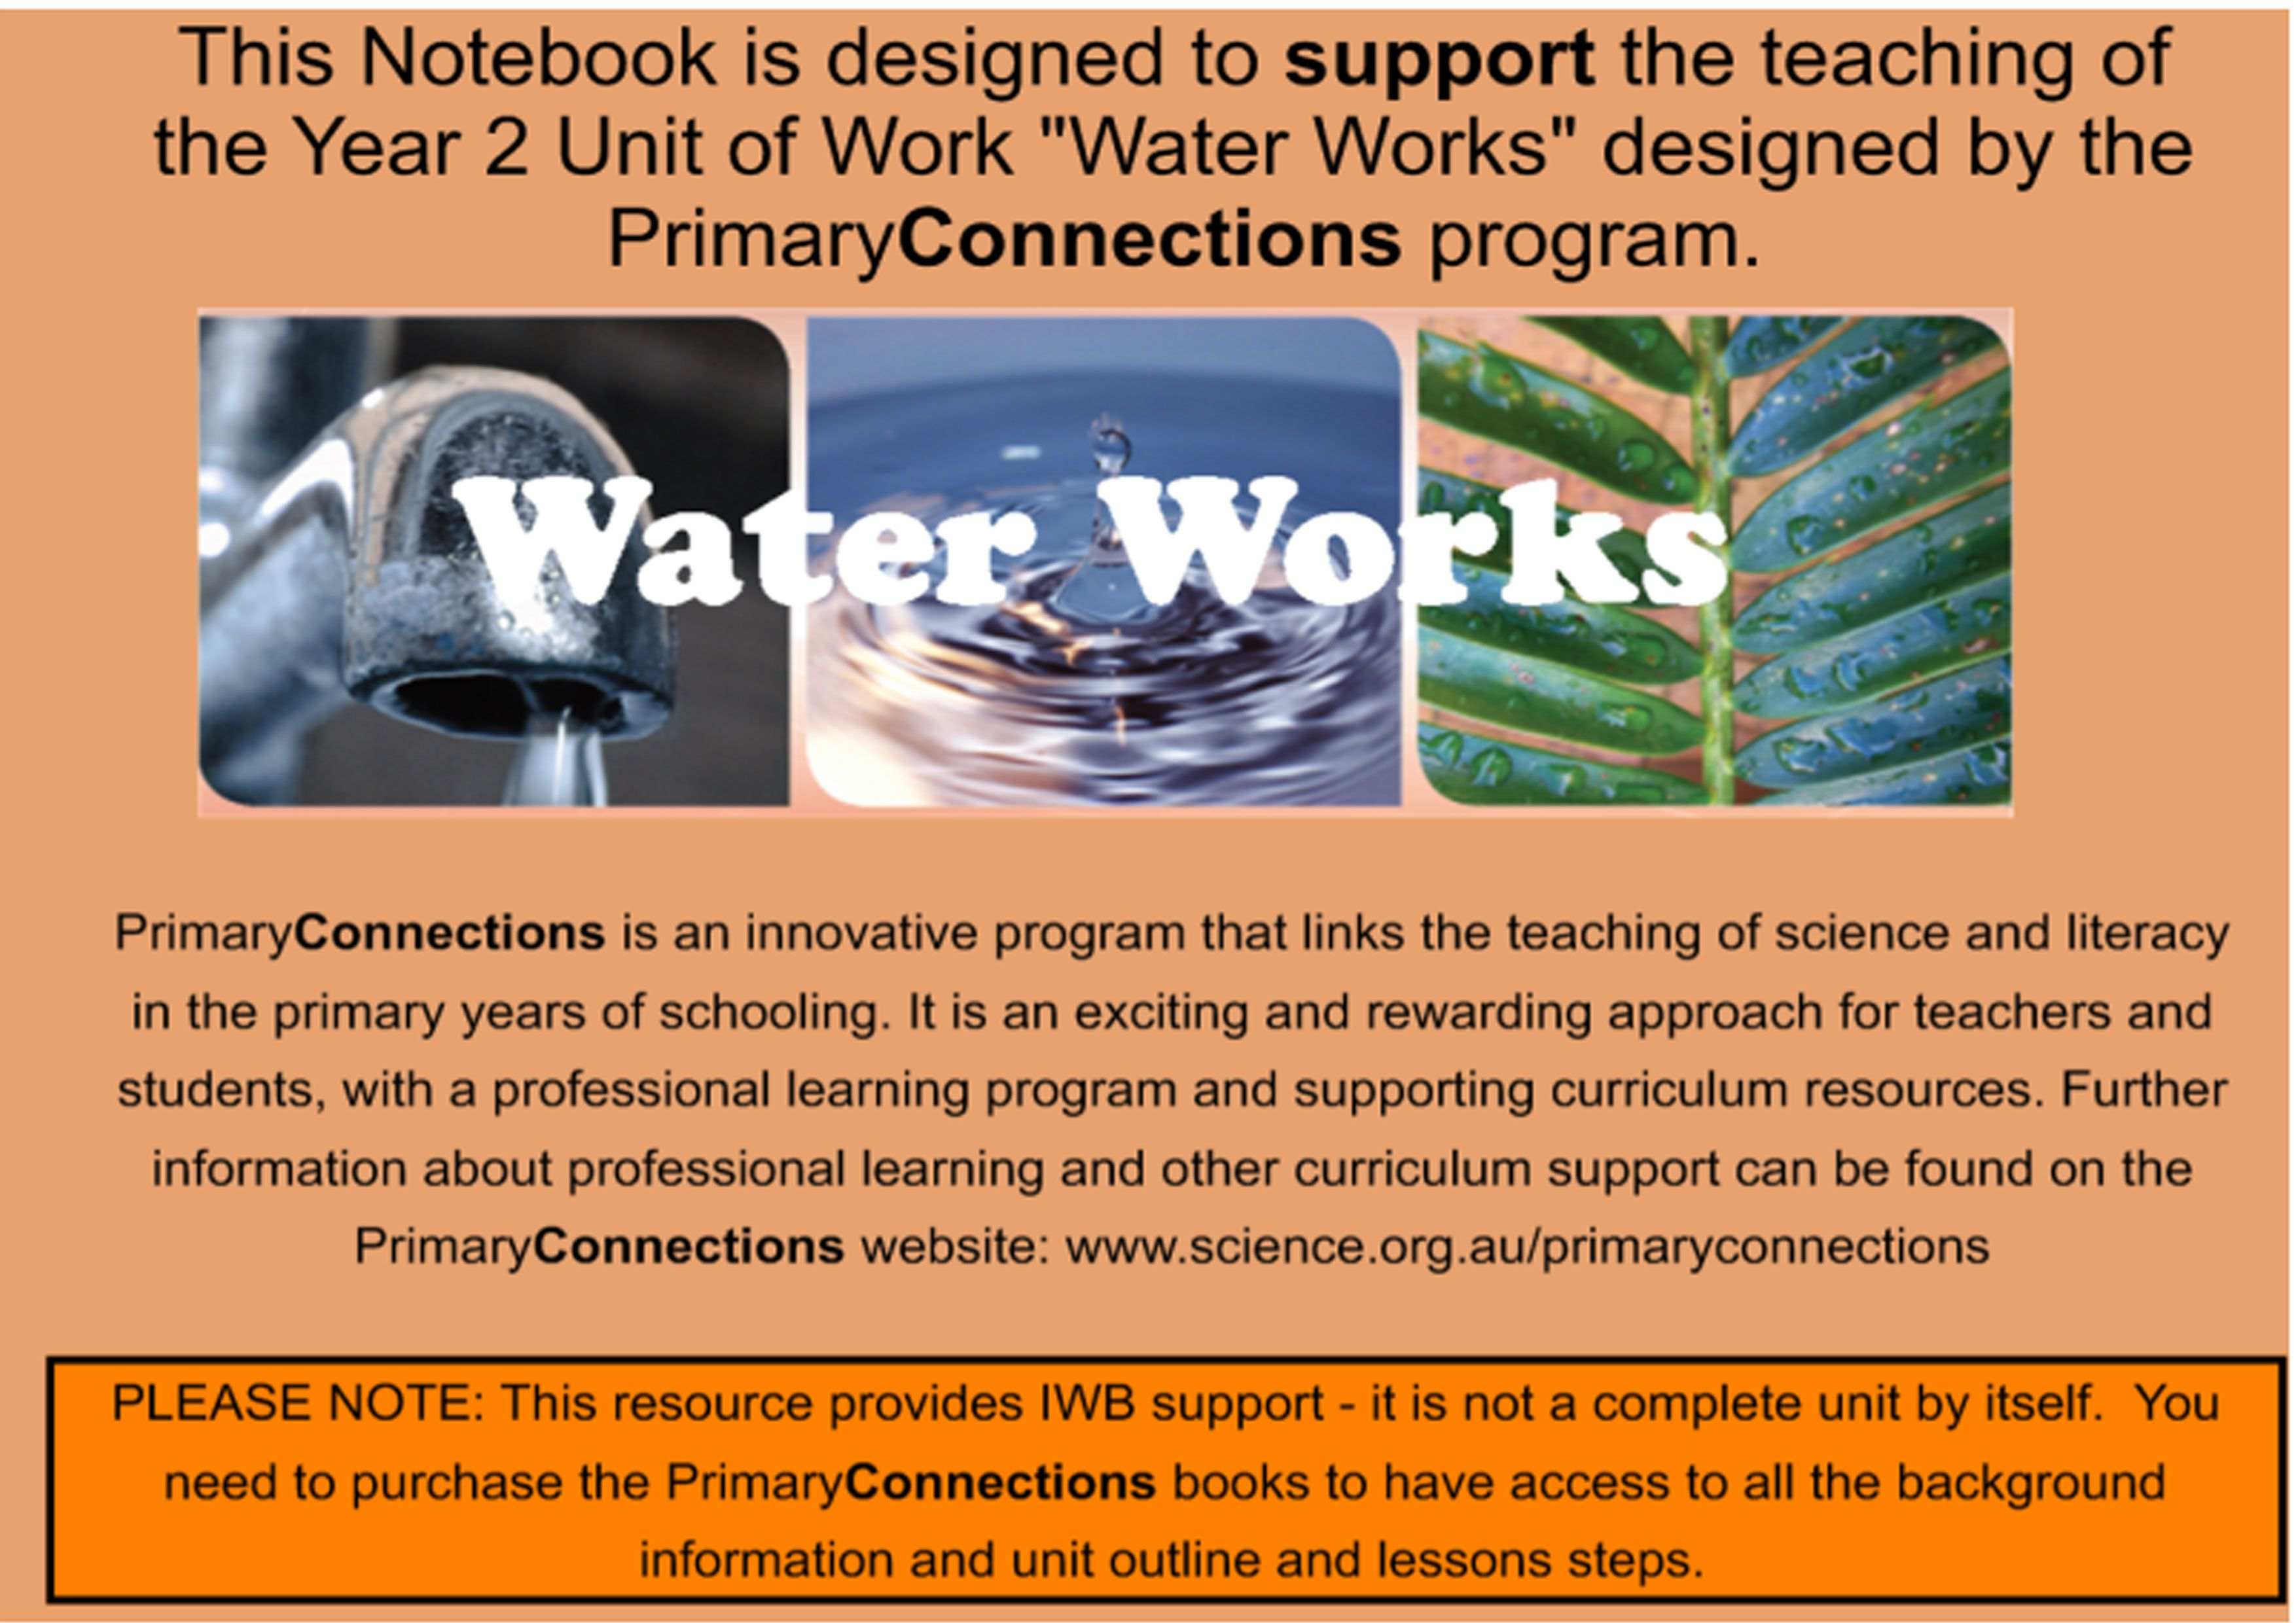 This wonderful resource provides IWB support material for the Year 2 PrimaryConnections Unit of Work: Water Works. This unit provides opportunities for students to develop an understanding of, and appreciation for, a precious natural resource. Through investigations, students explore how water is used, where water comes from and how to use it responsibly.